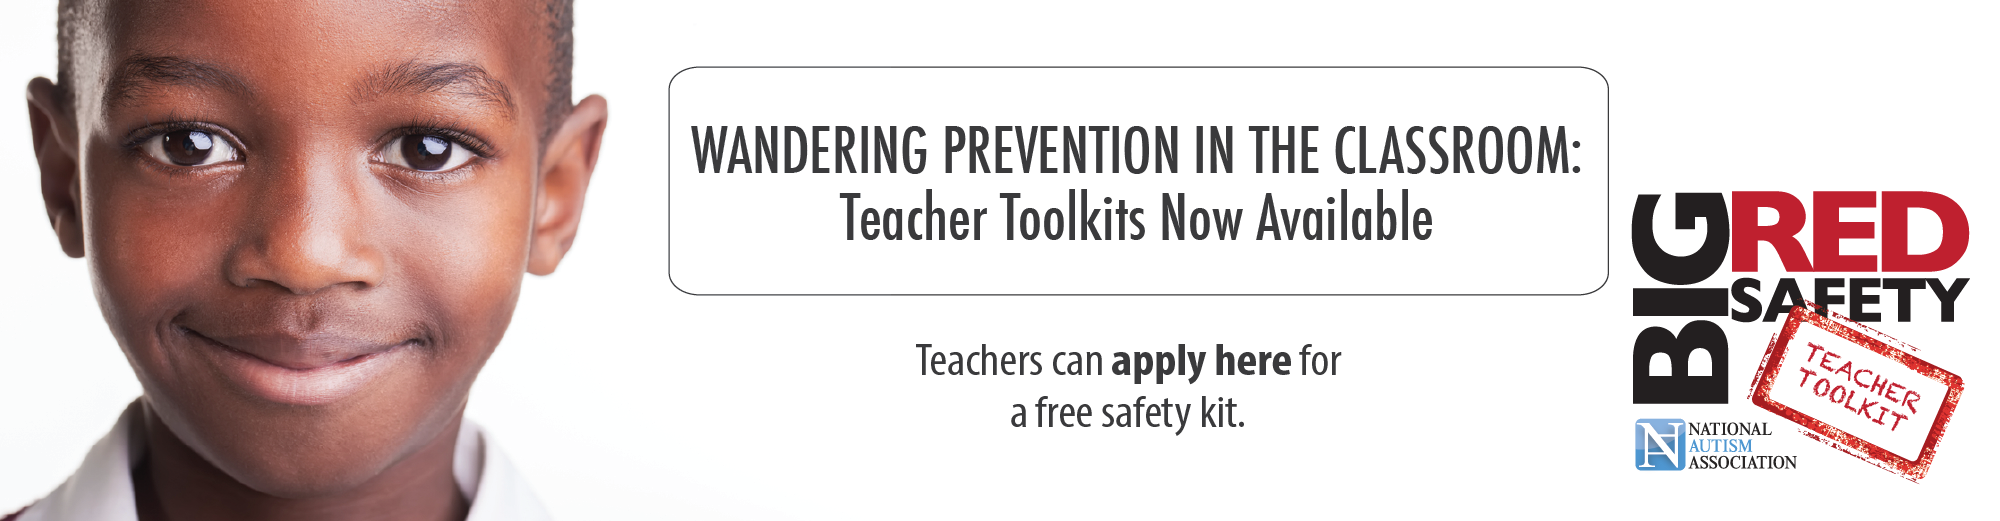 NAA's Big Red Safety Teacher Toolkit®